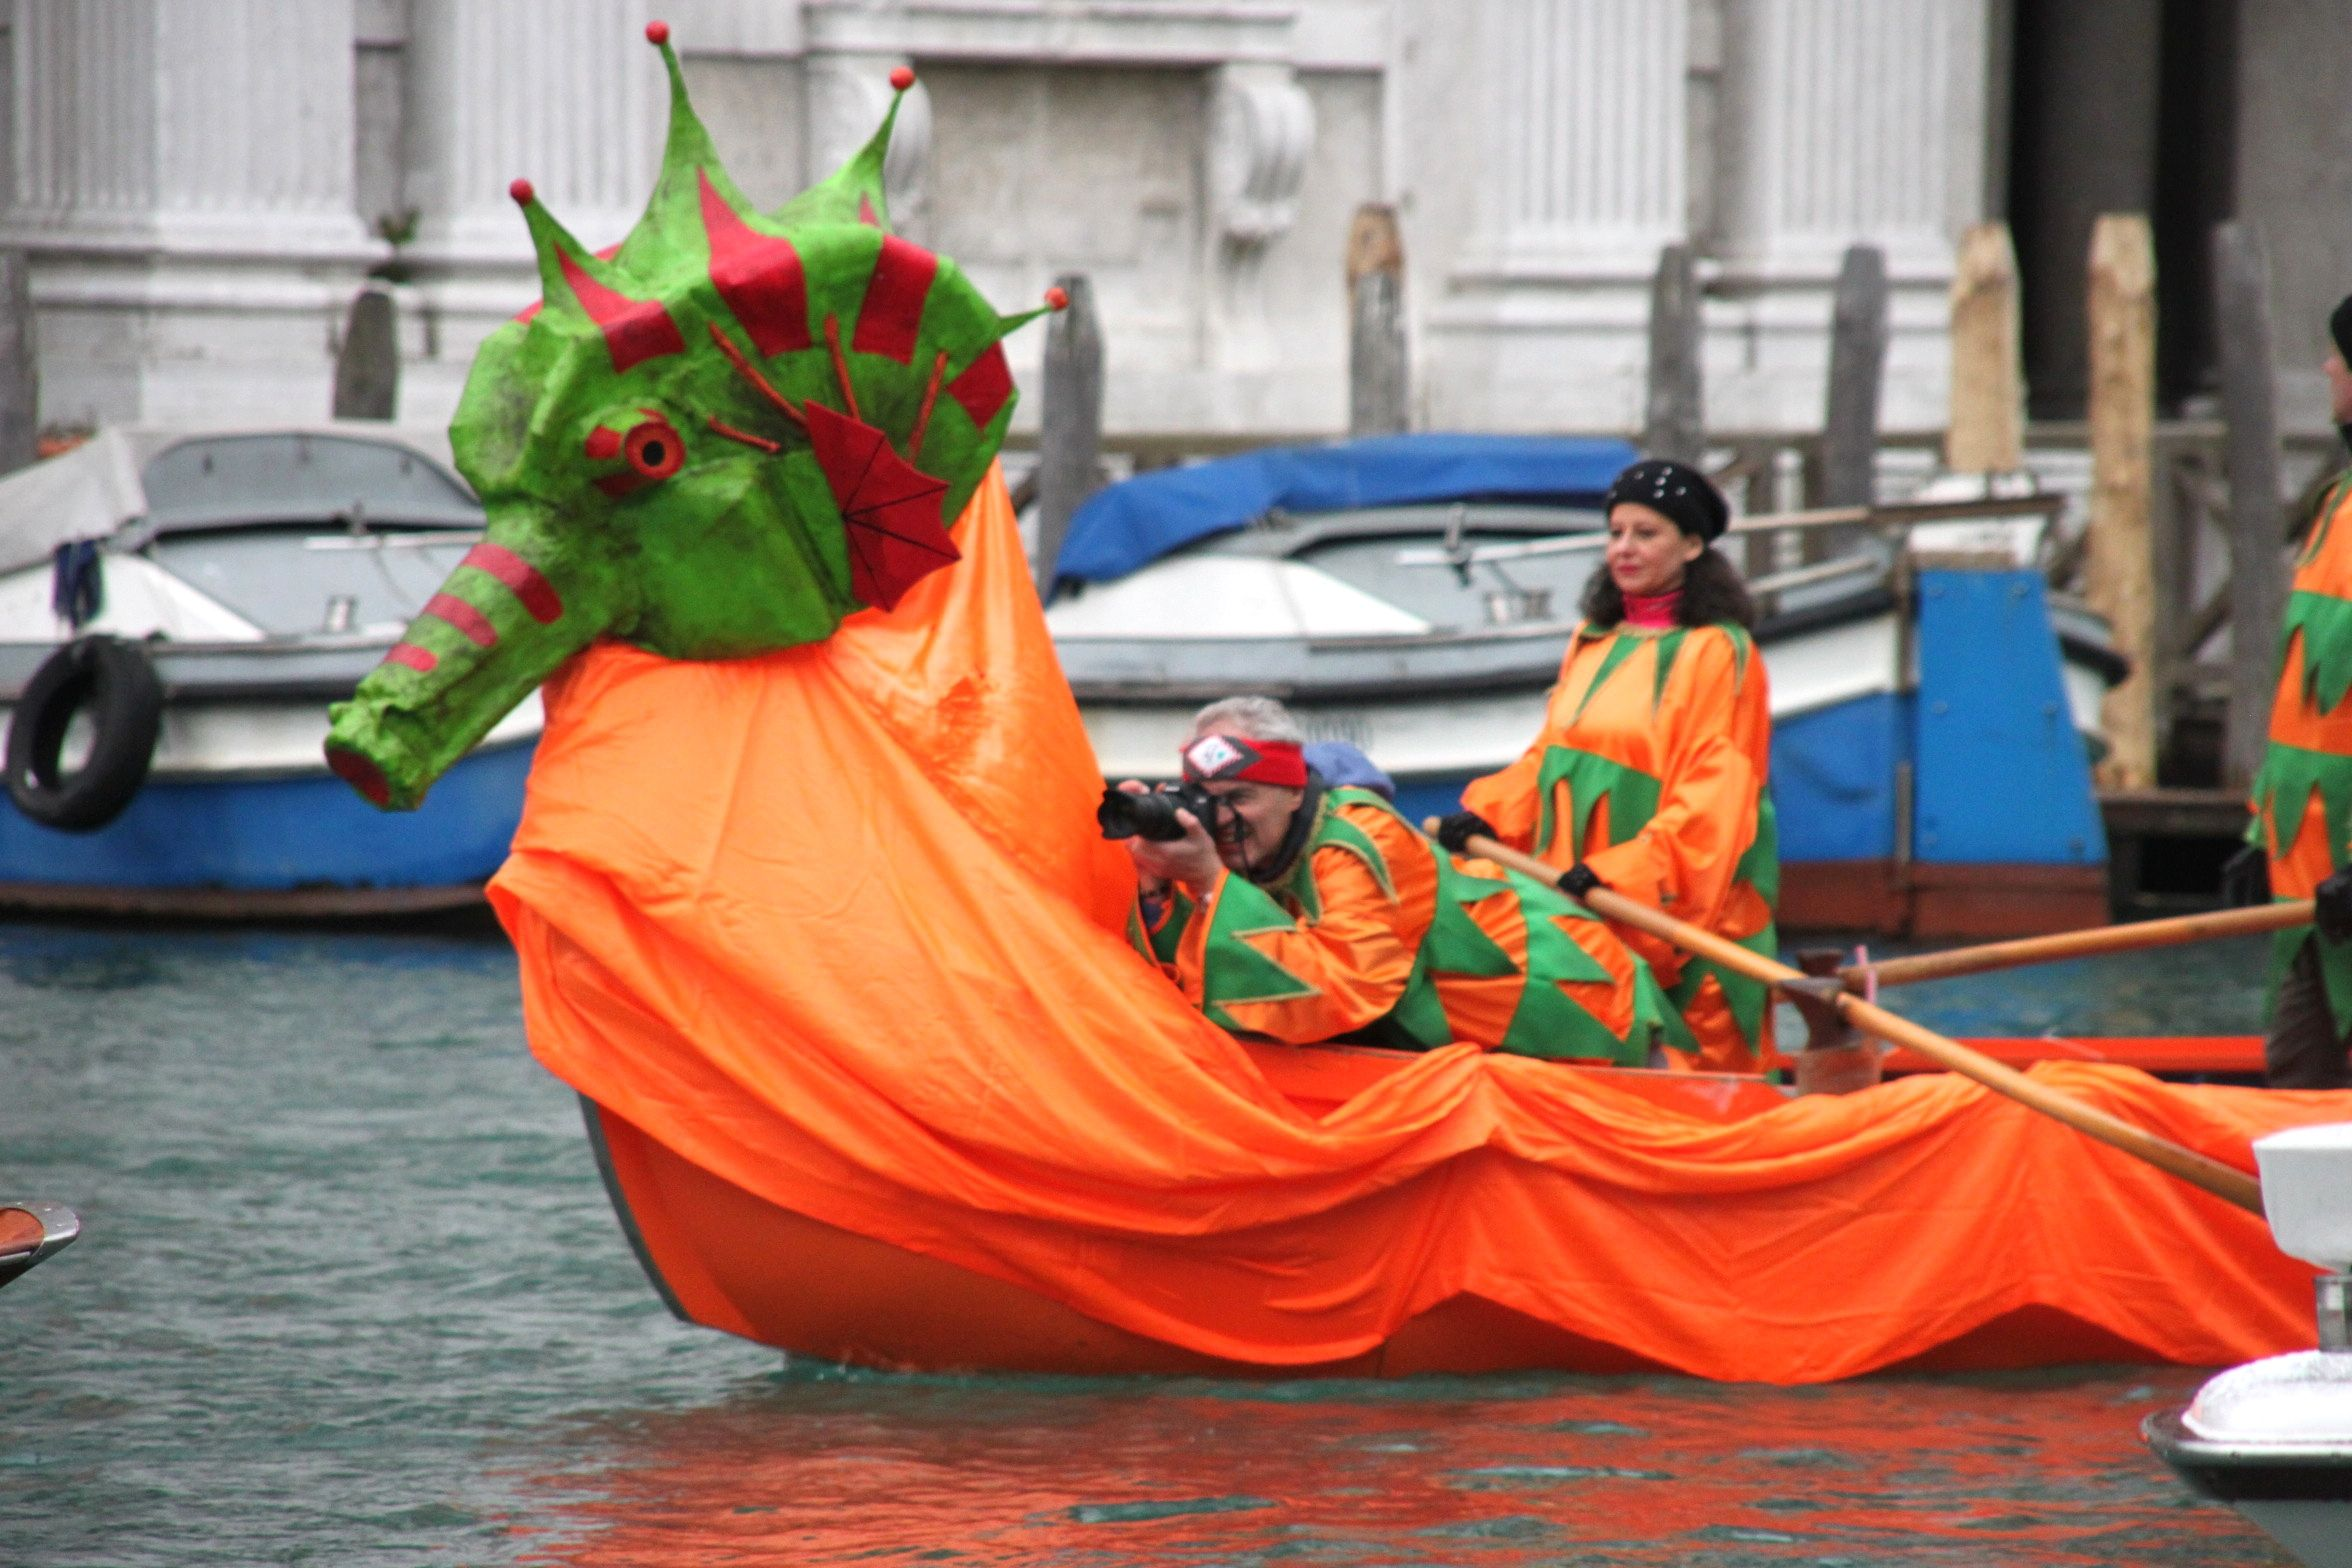 Venice Carnival Water Parade - a photographer grabs a lift on a boat decorated as a dragon